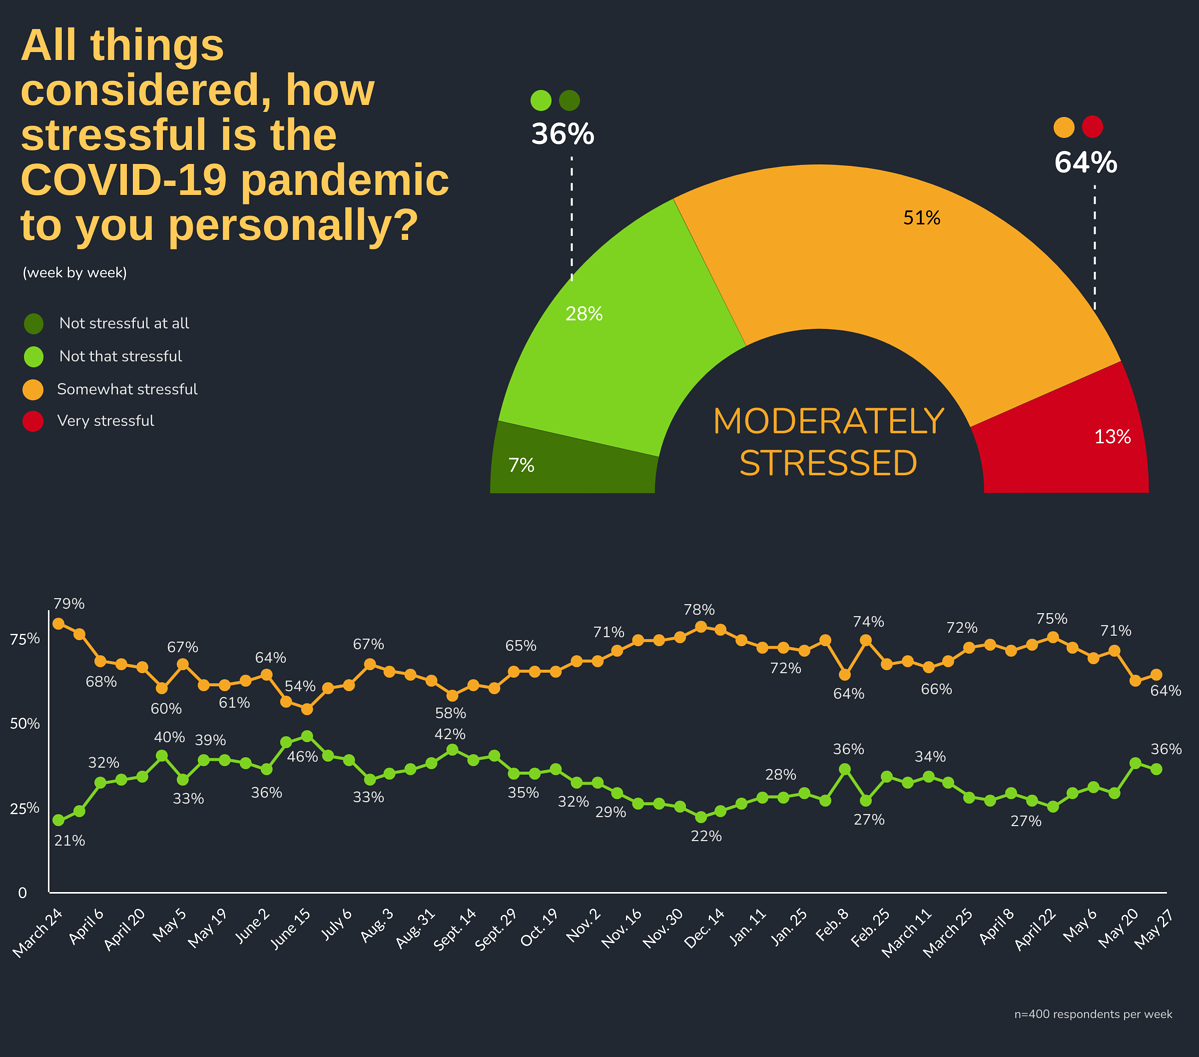 All things considered, how stressful is the COVID-19 pandemic to you personally? by Week: Week